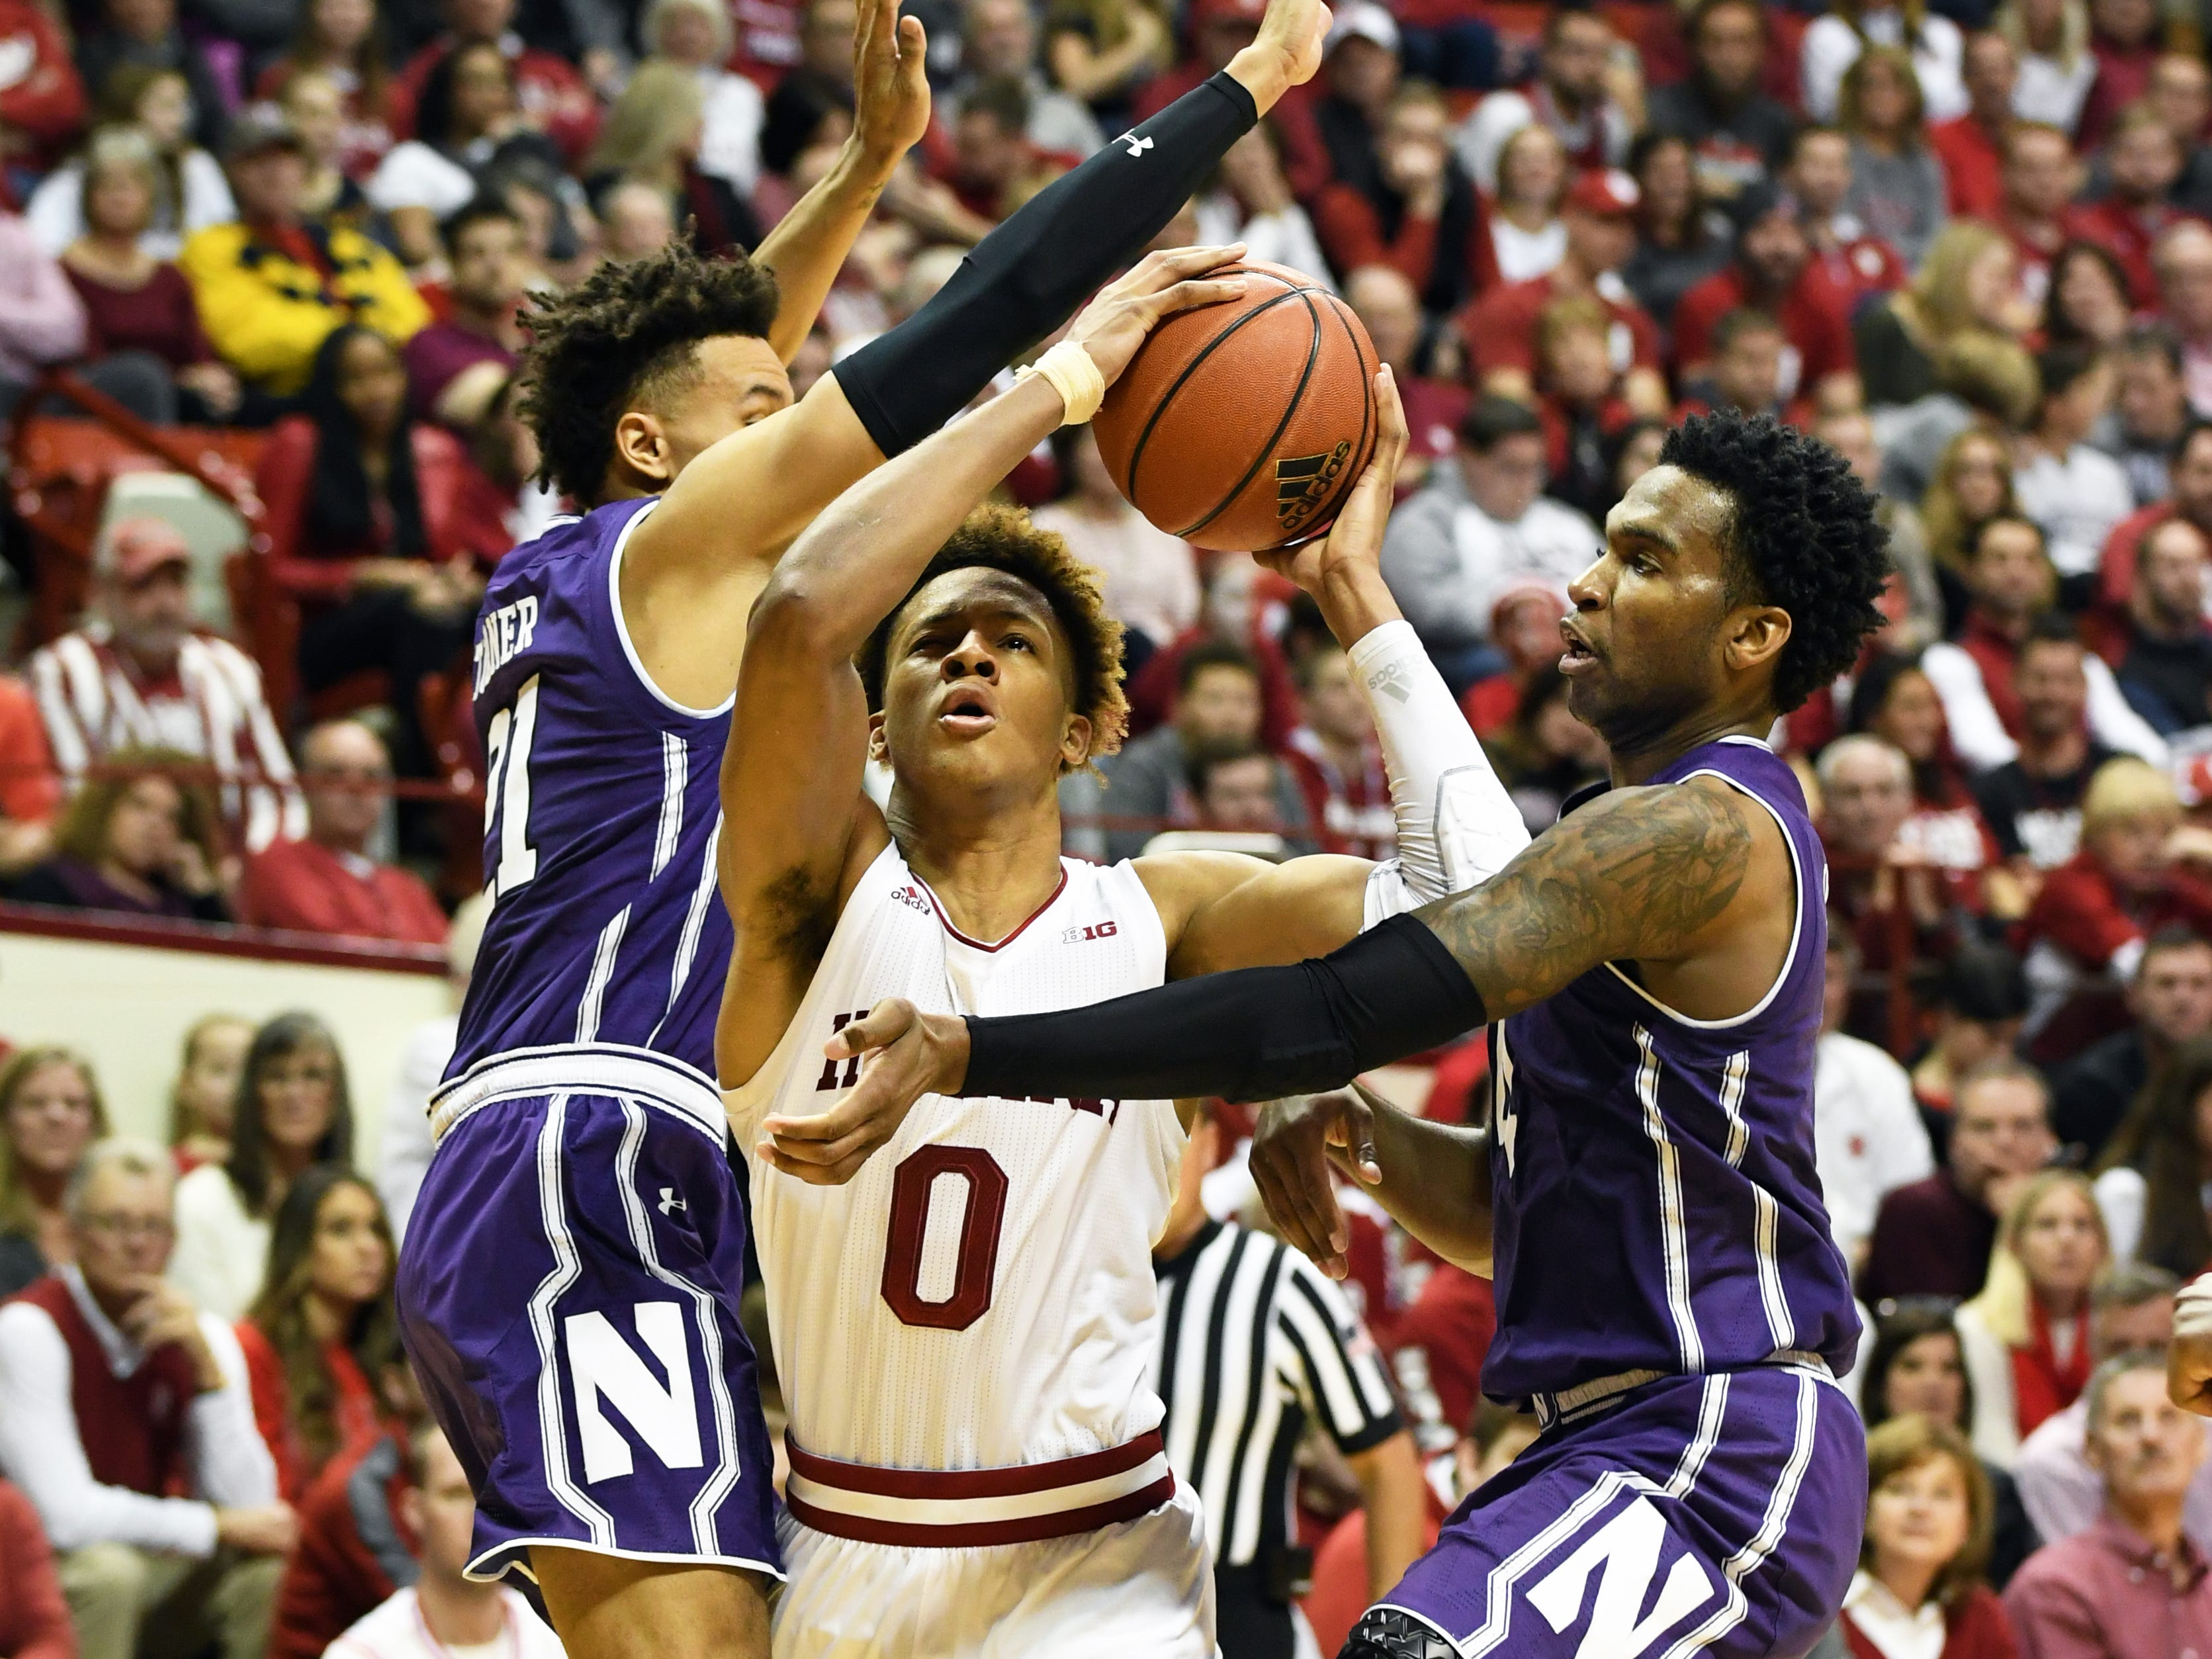 Indiana Hoosiers guard Romeo Langford (0) drives to the basket during the game against Northwestern at Simon Skjodt Assembly Hall in Bloomington, Ind., on Saturday, Dec. 1, 2018.